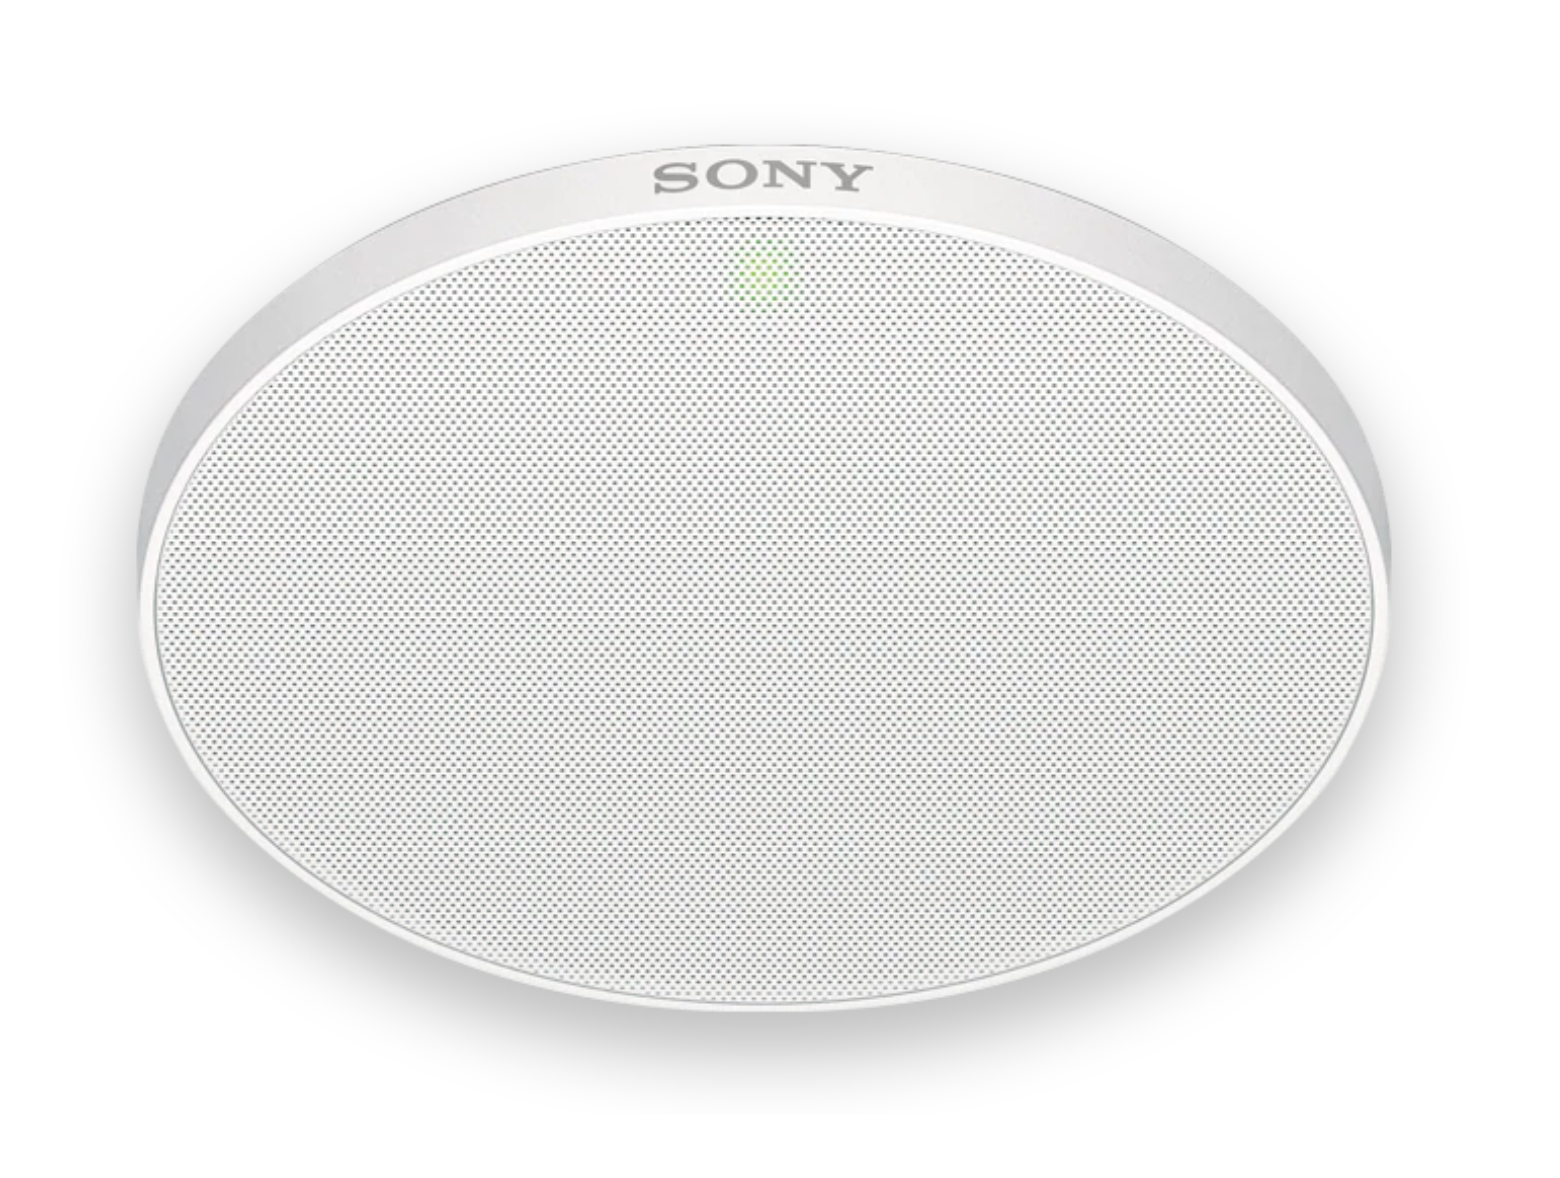 Sony Beamforming Microphone